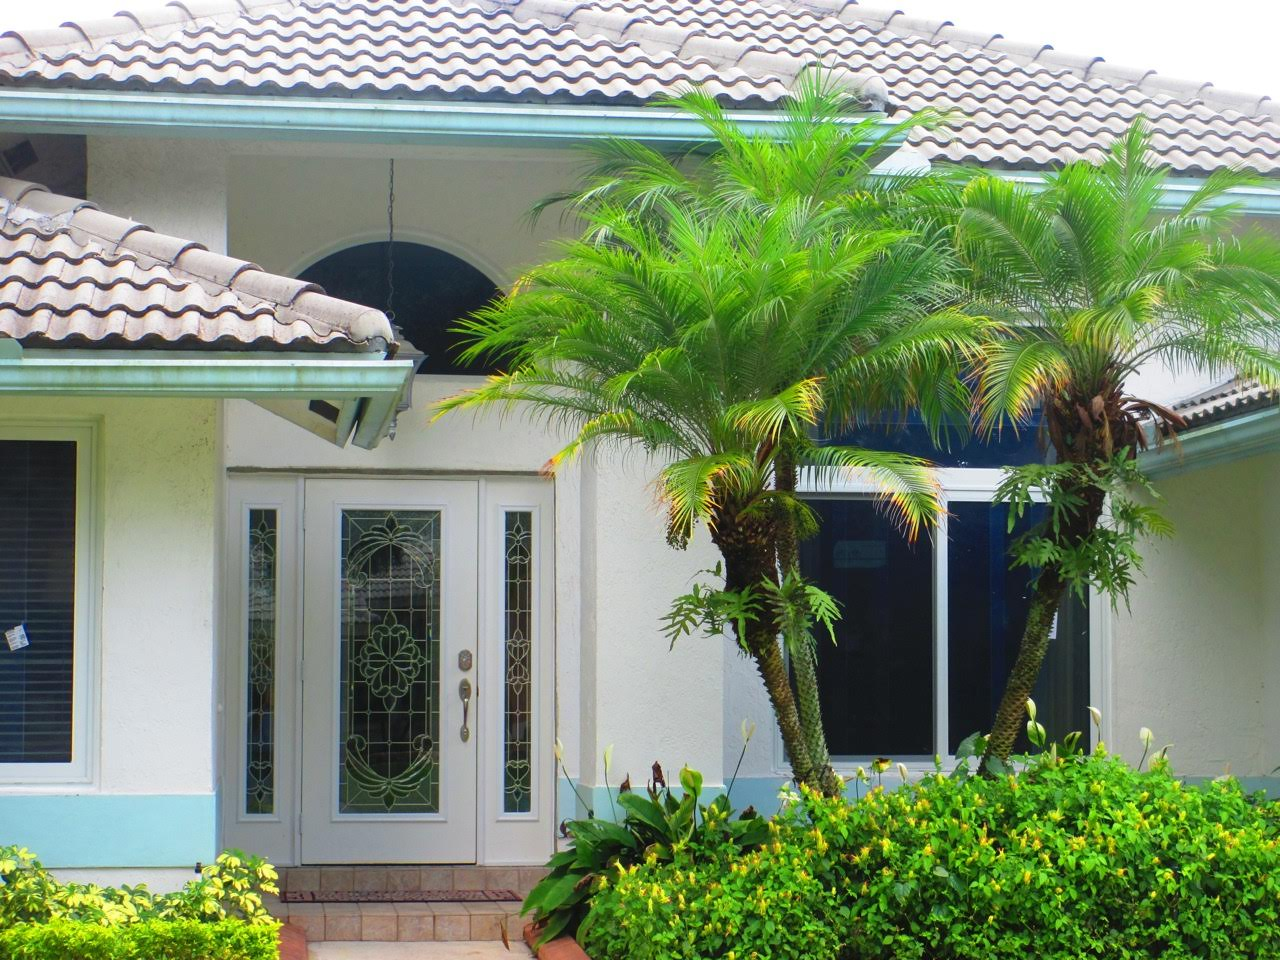 Delray Beach, FL hurricane impact resistant windows and doors.